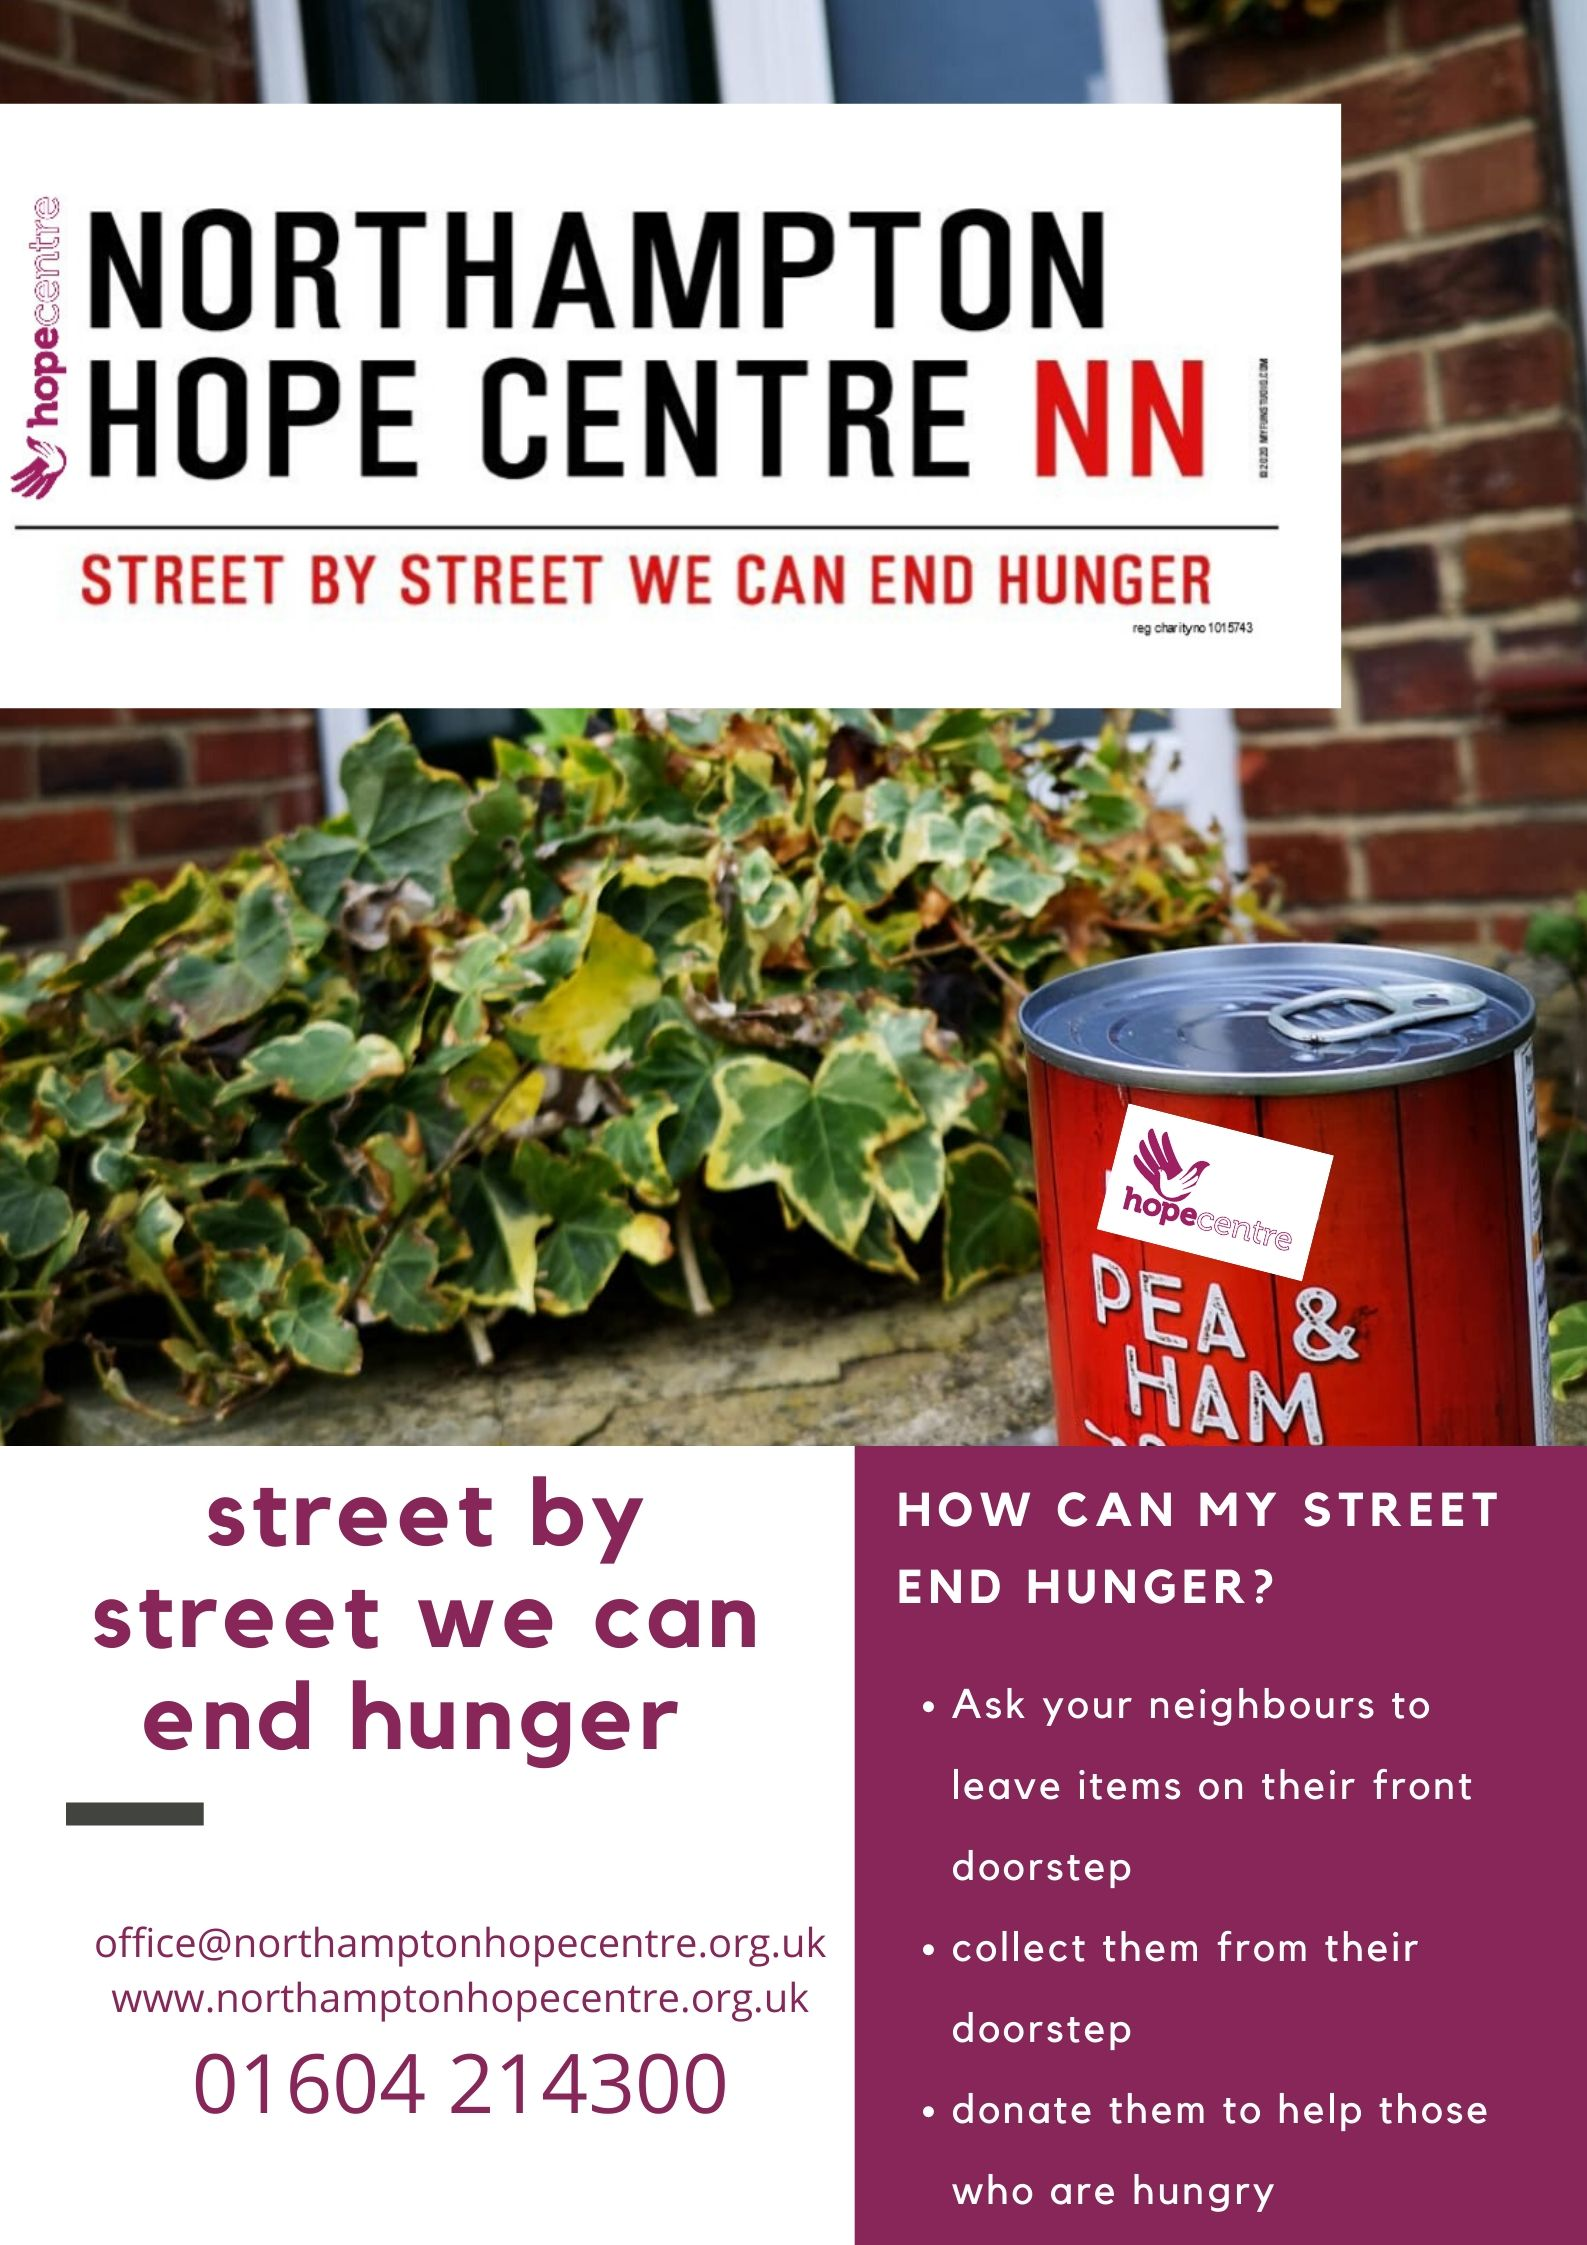 The Street by Street campaign from 2020 lockdown to generate food donations from across the county